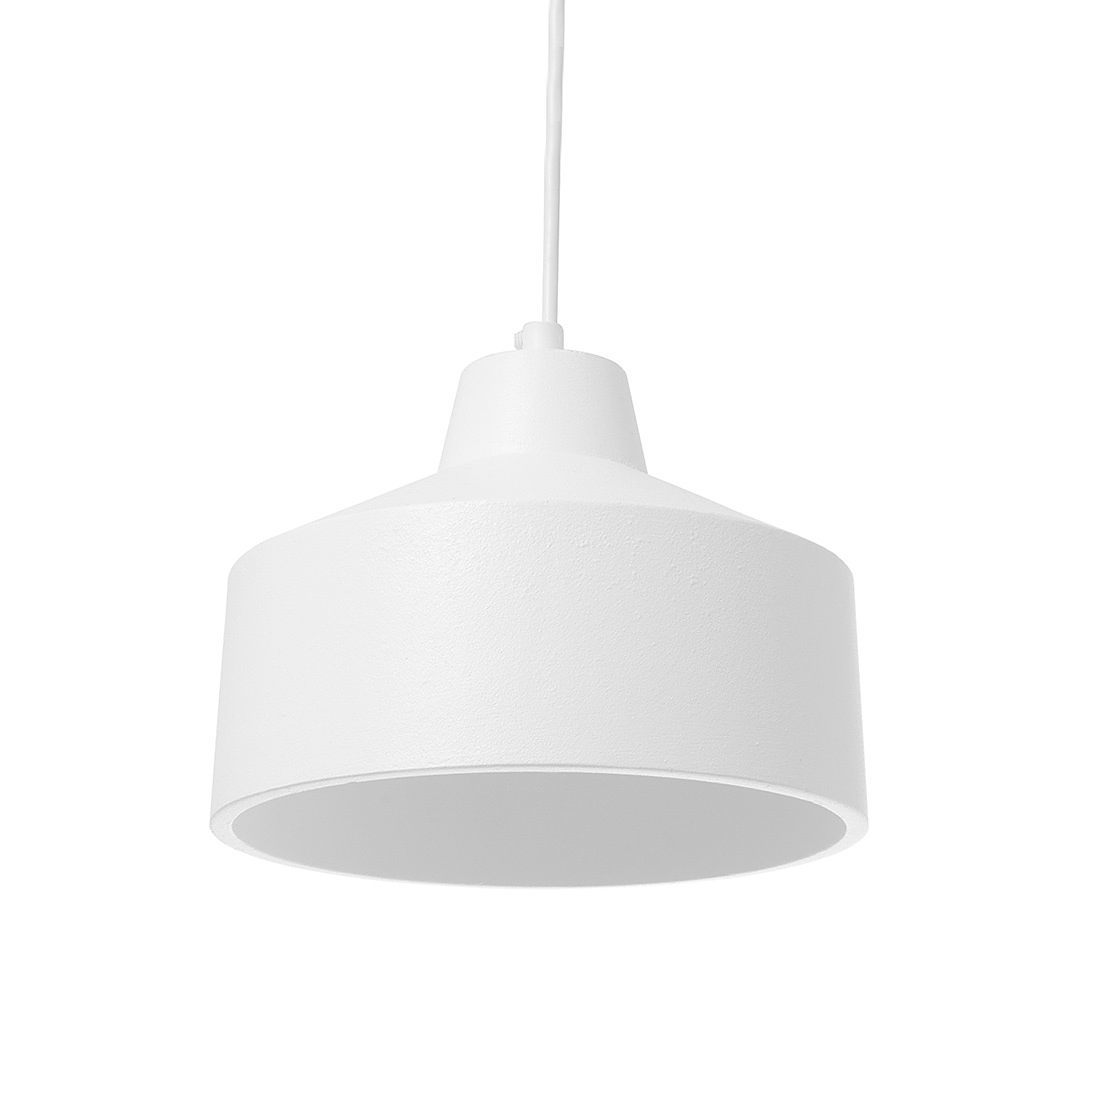 iconic lighting. Minimalist White Pendant Lamp By Jonathan Sabine Iconic Lighting